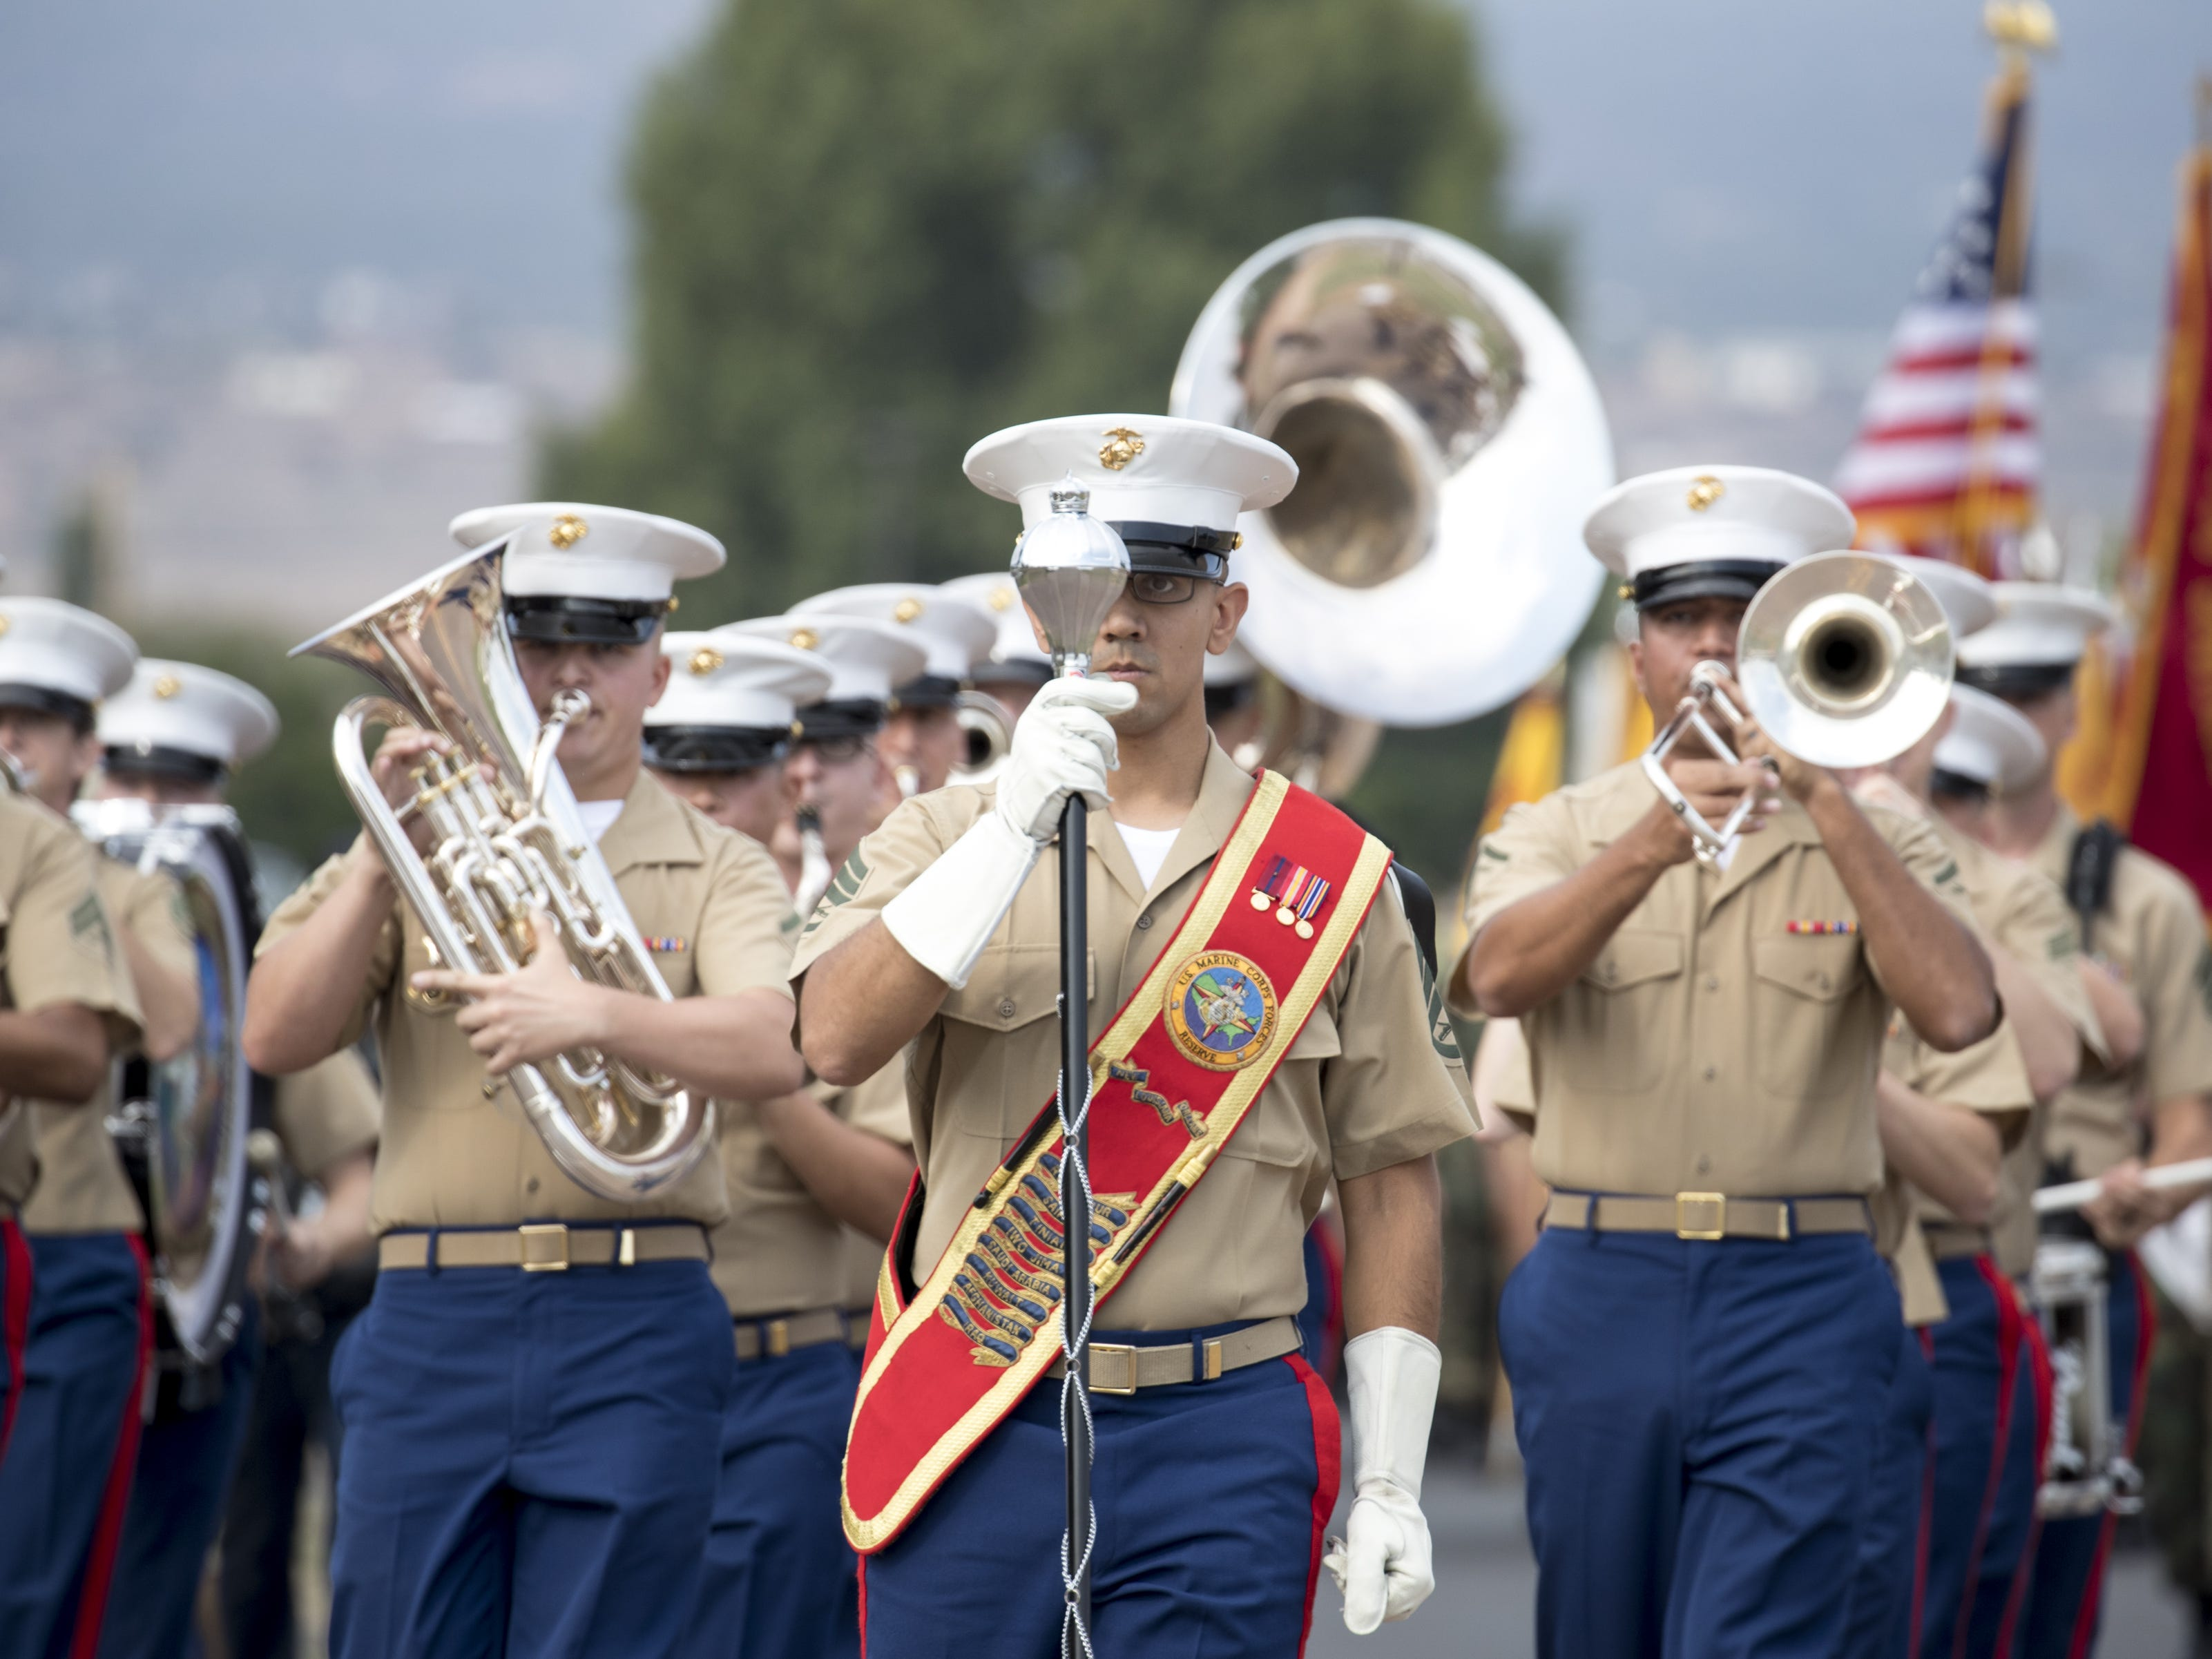 The Marine Forces Reserve Band performs, August 13, 2018, during the Navajo Nation Code Talkers Day parade on Aug. 14, 2018, at the Navajo Nation Fairgrounds in Window Rock.